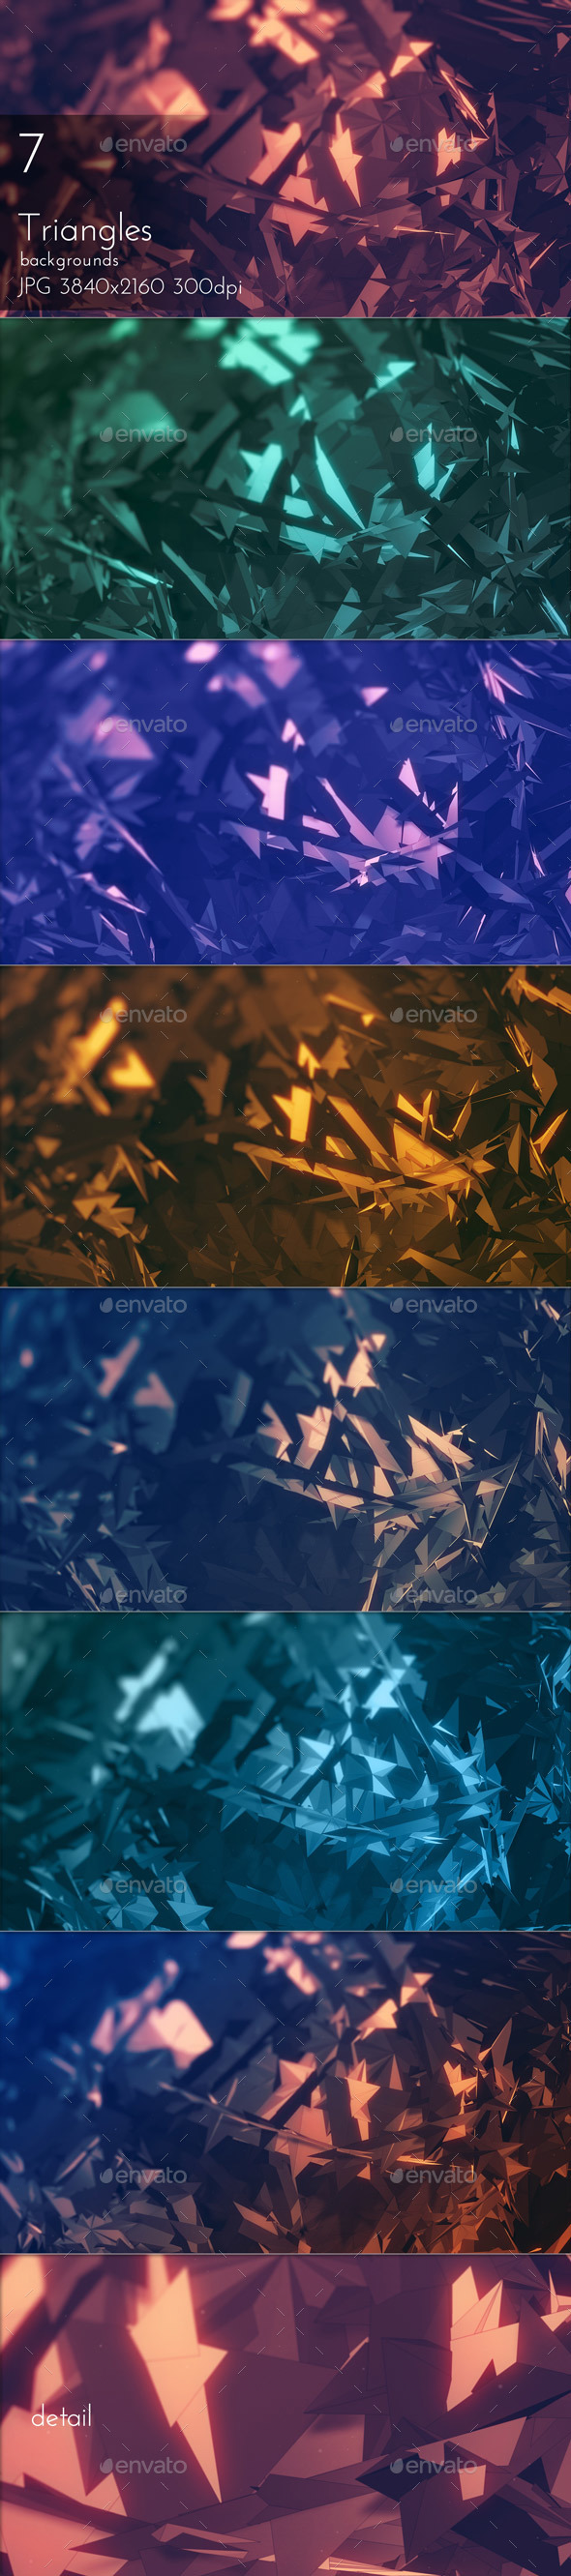 GraphicRiver Triangular Polygons Abstract Backgrounds 20830888